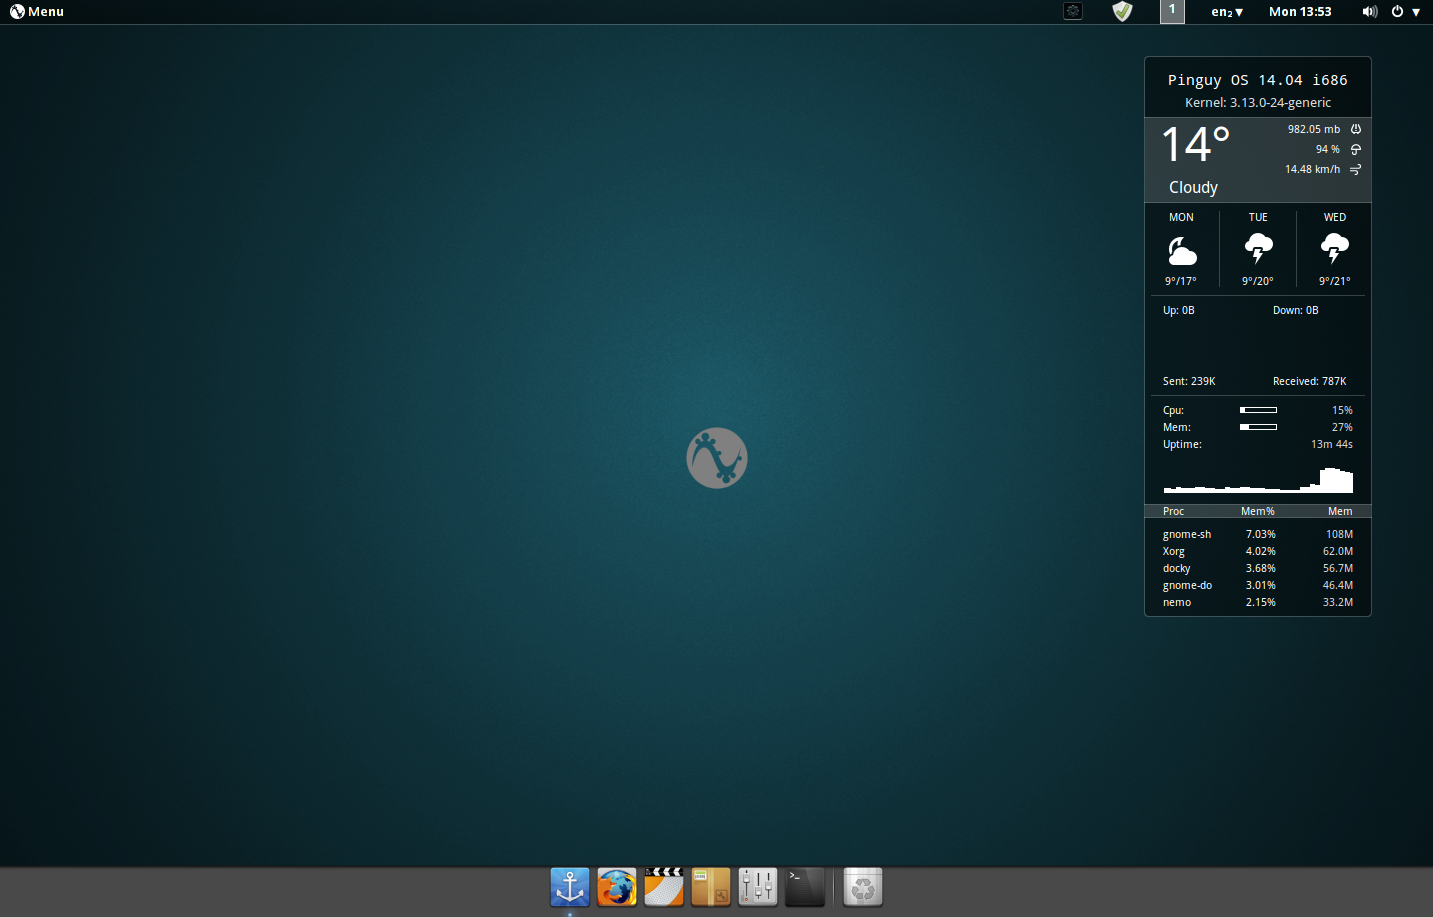 Red hat linux operating system free download.